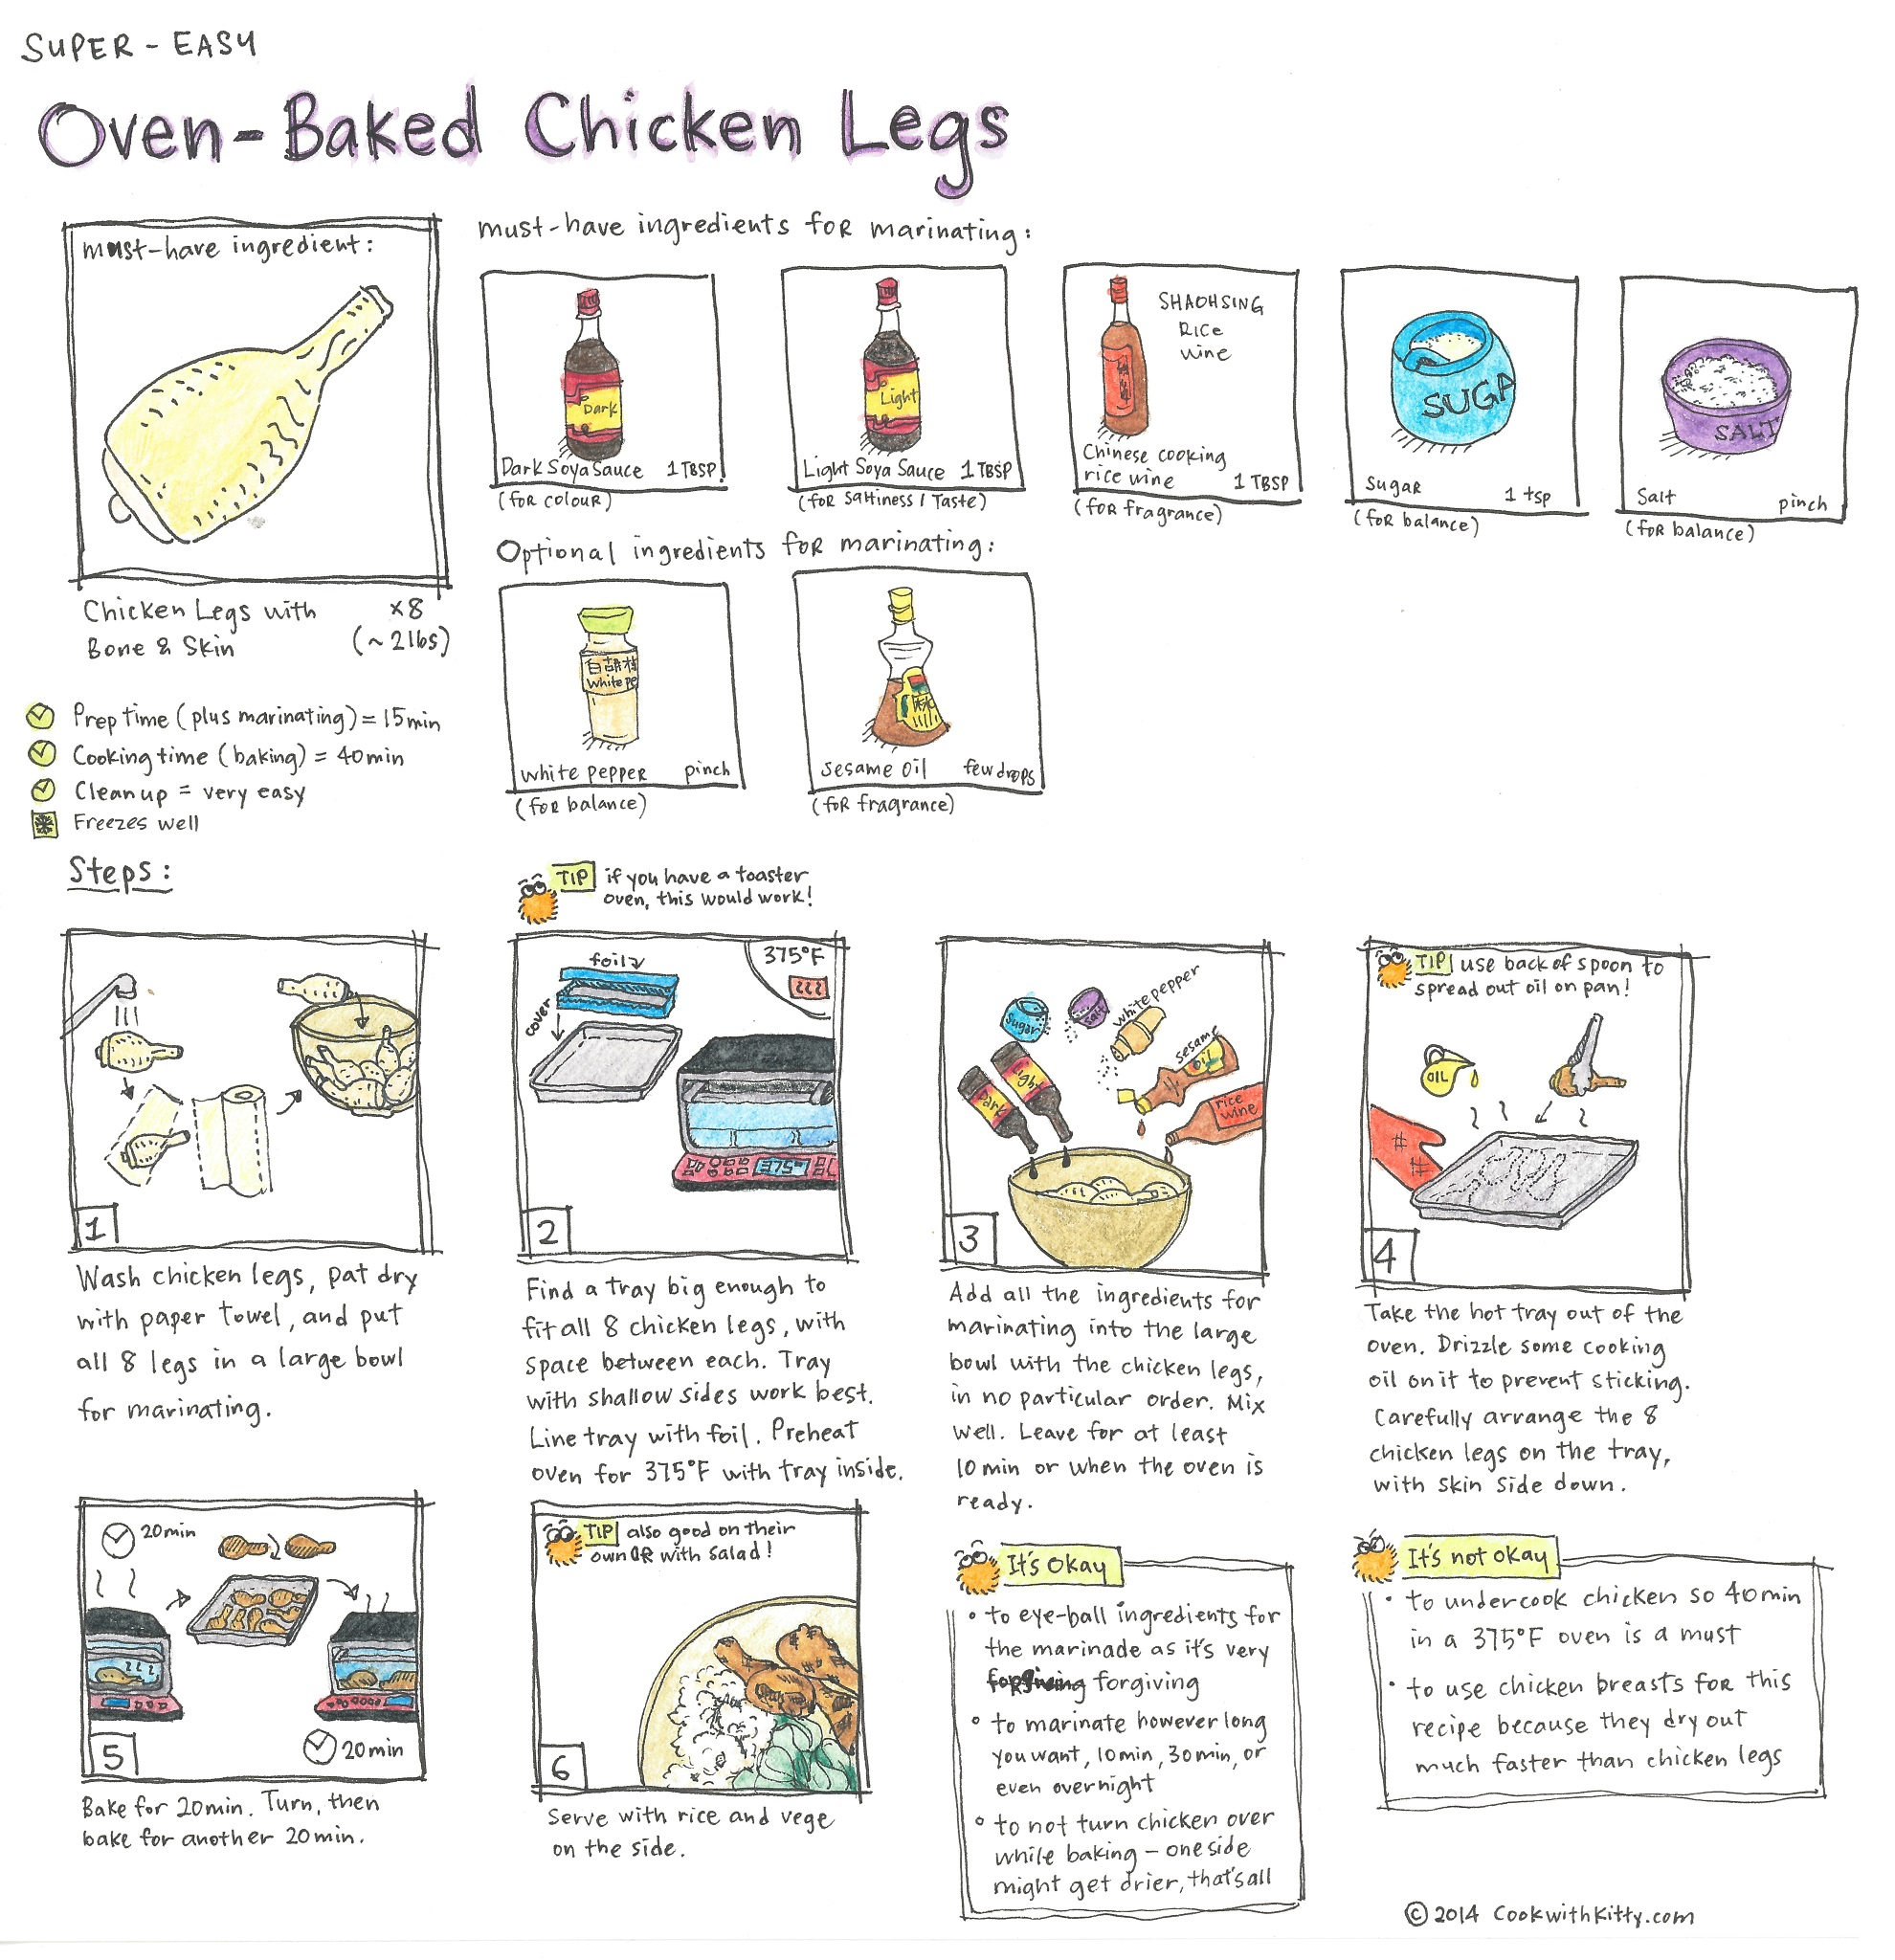 Recipe of an oven-baked chicken legs that requires minimal work and clean up time